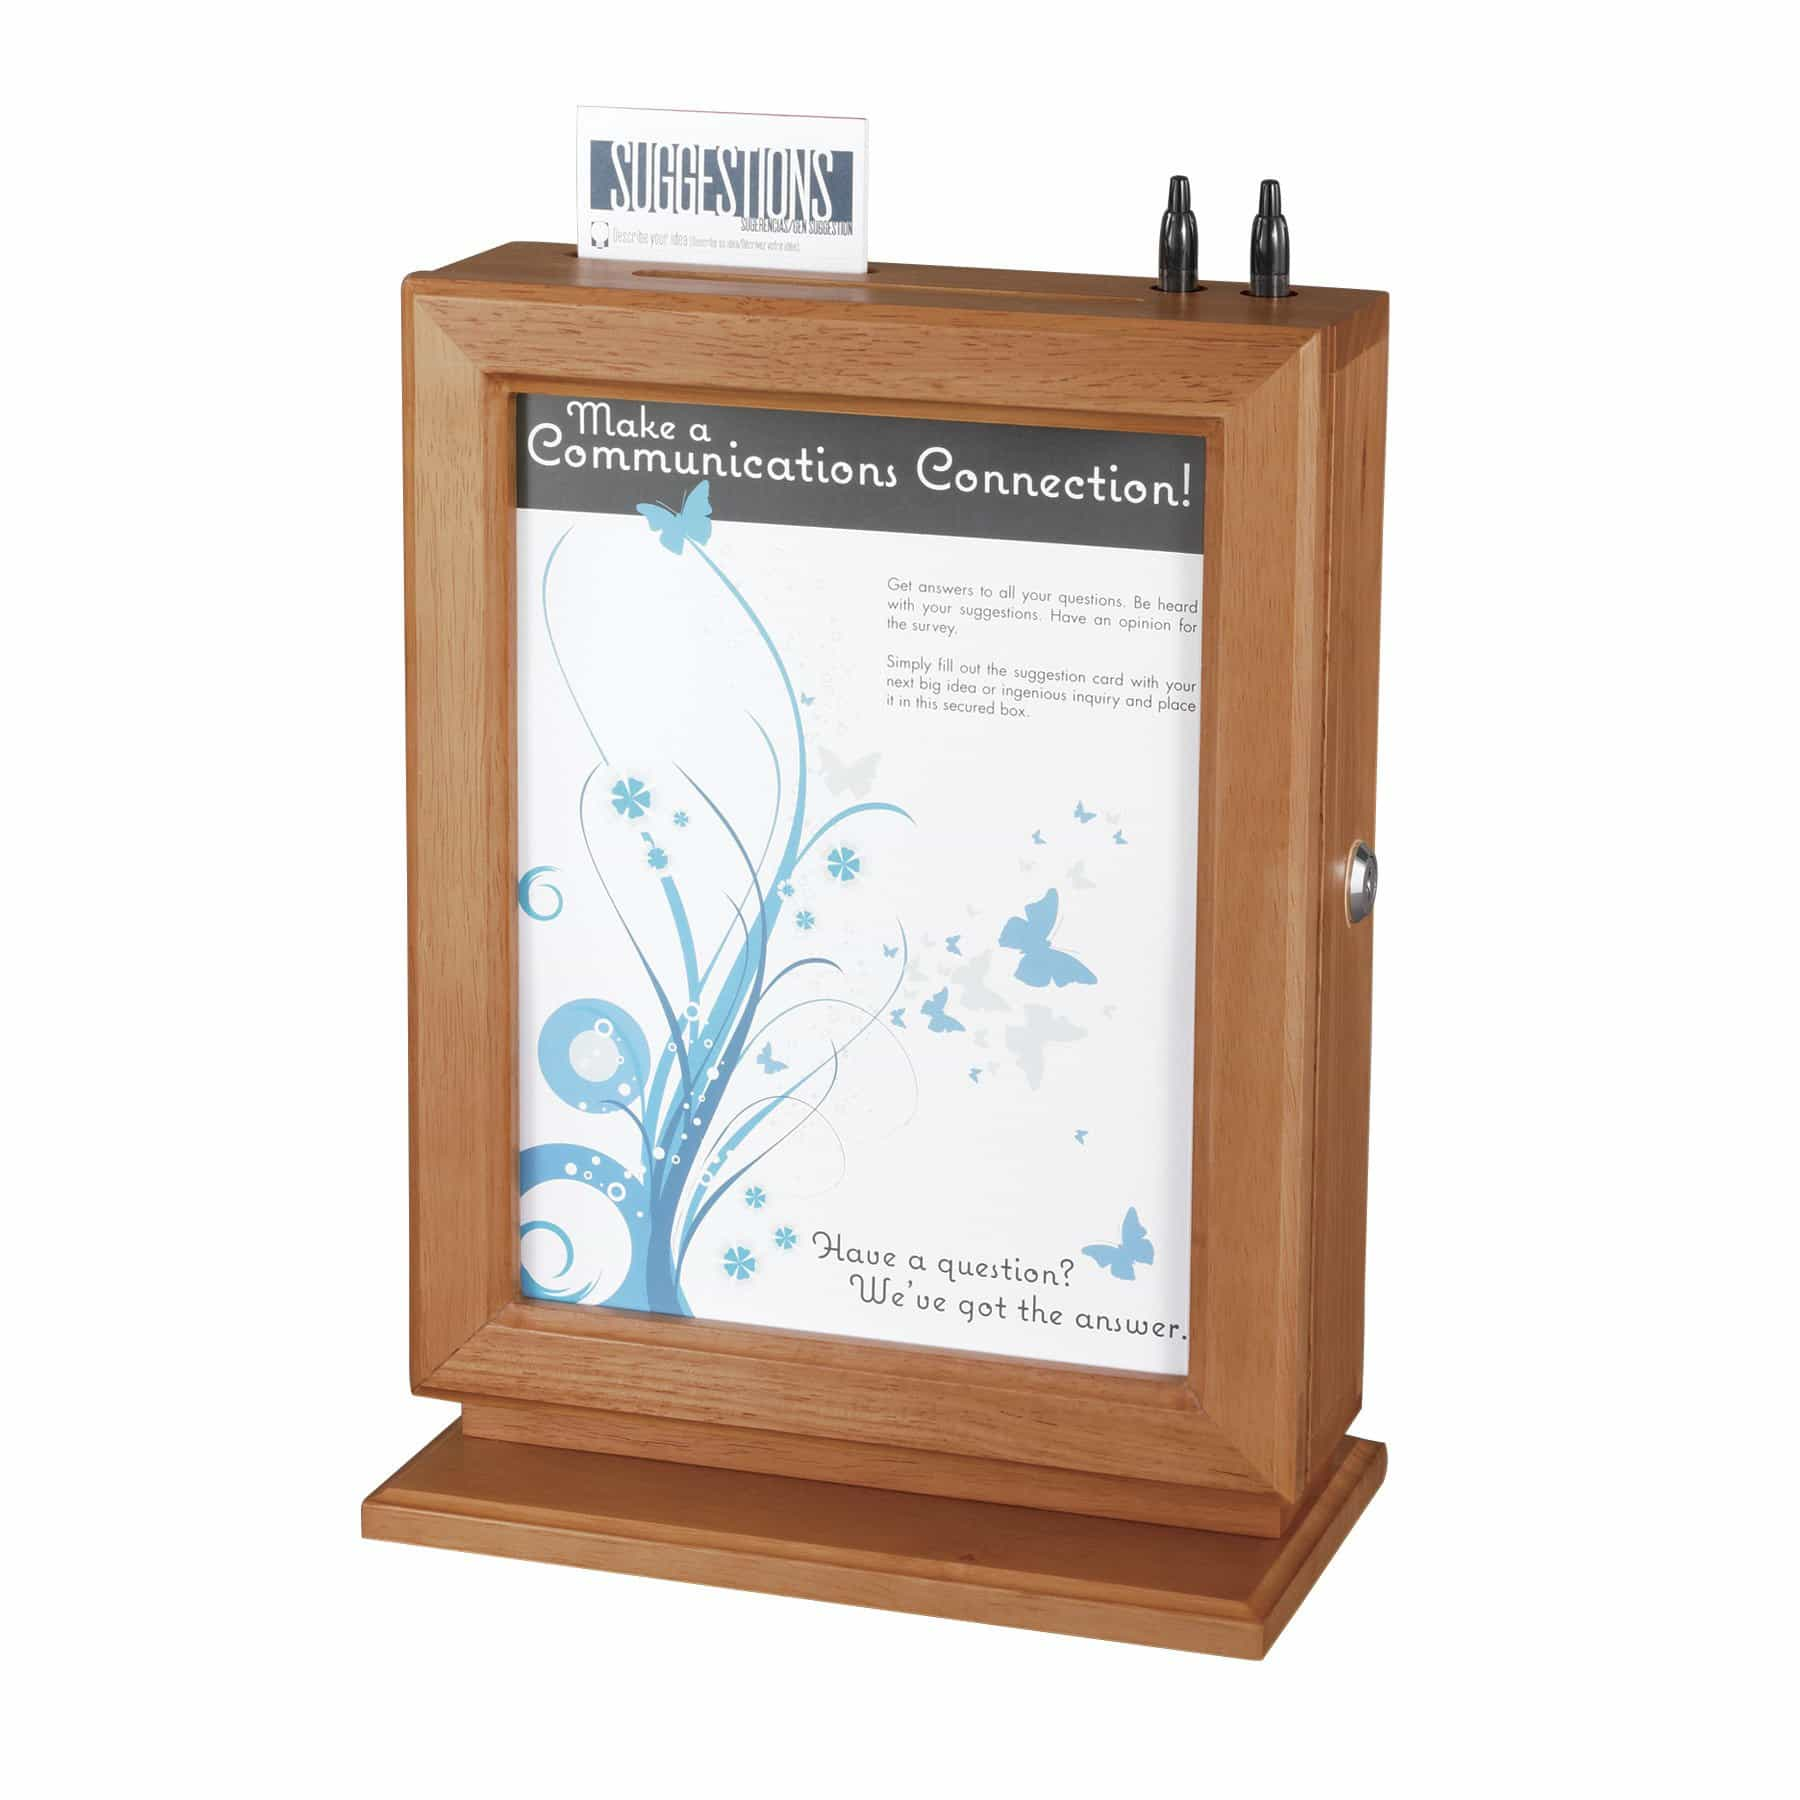 bedinhome - Safco Wall mountable Customizable Wood / Plexiglass Suggestion drop Box - Safco - Suggestion Box